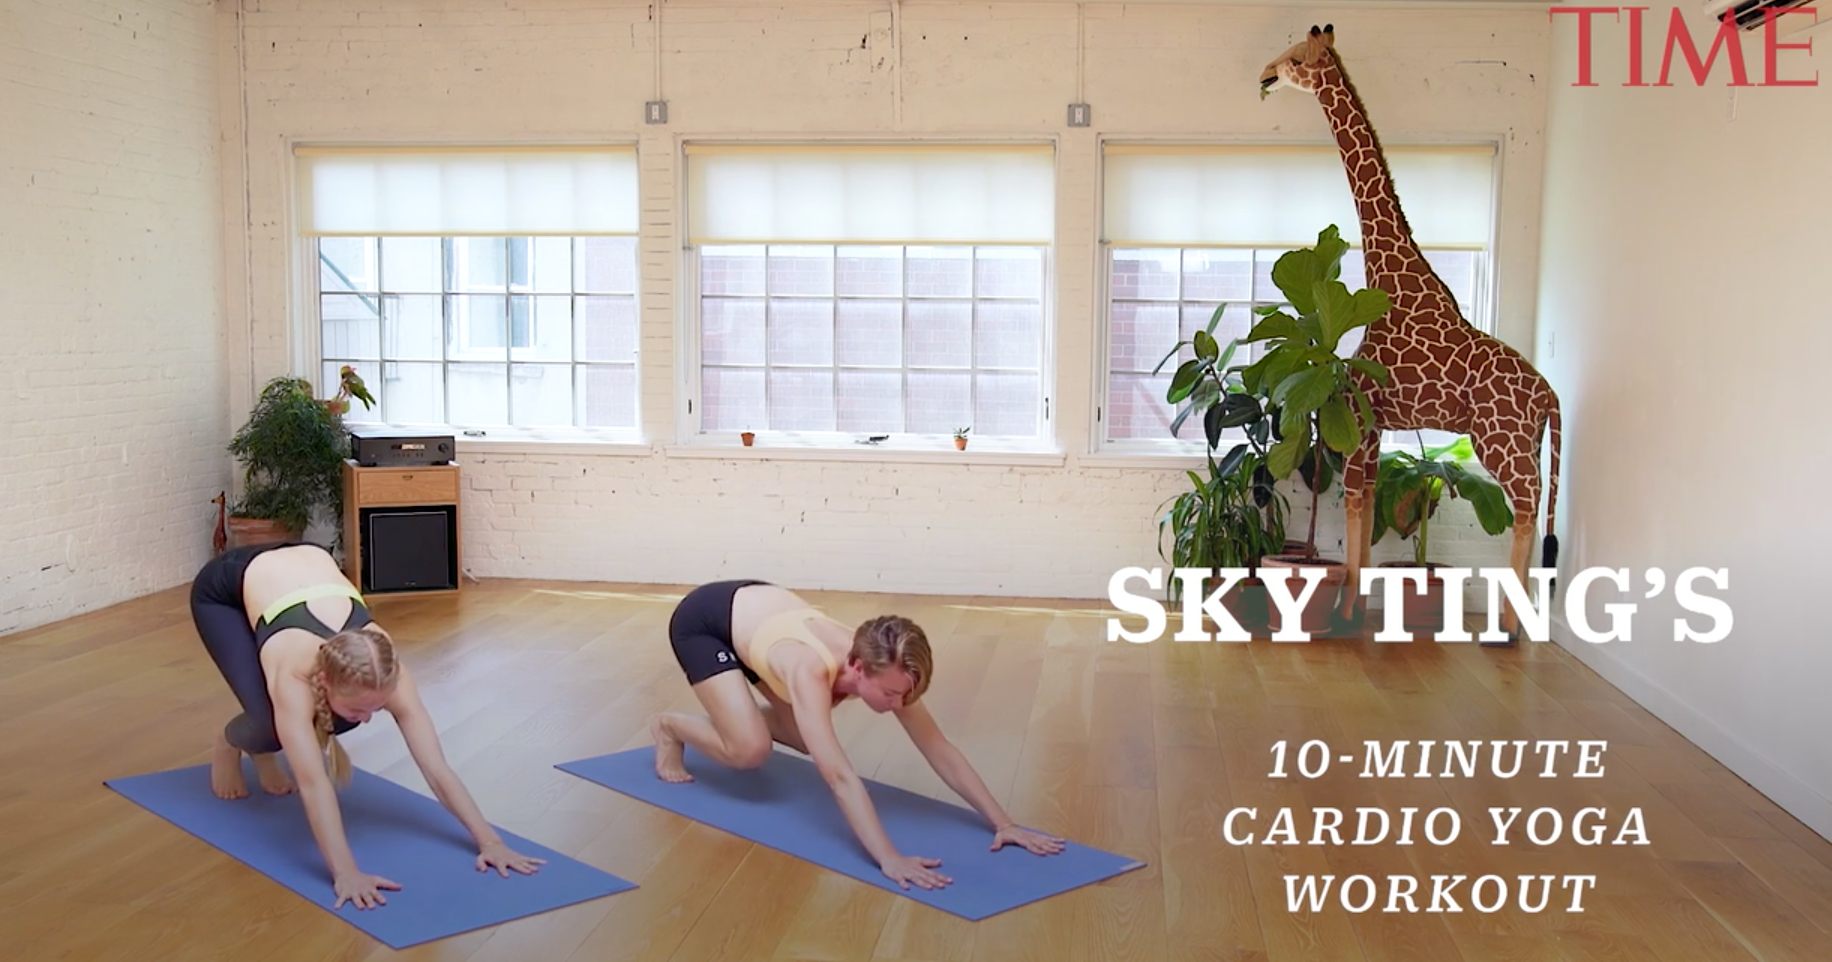 Get your heart rate up with this fun cardio yoga workout.